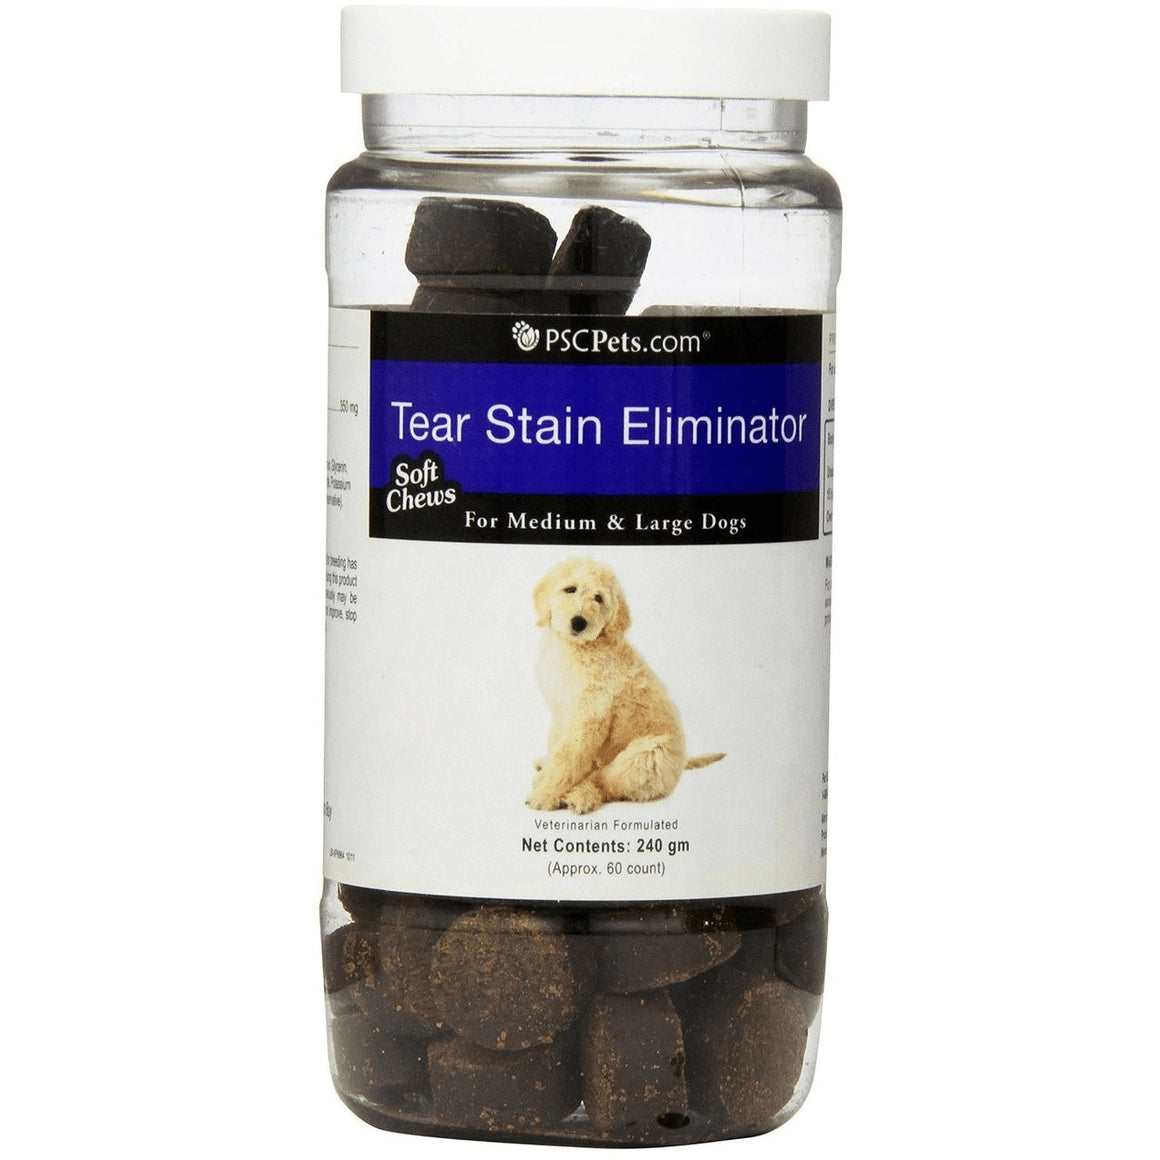 PSCPets Tear Stain Eliminator - Soft Chews for Medium and Large Dogs - 240 gm